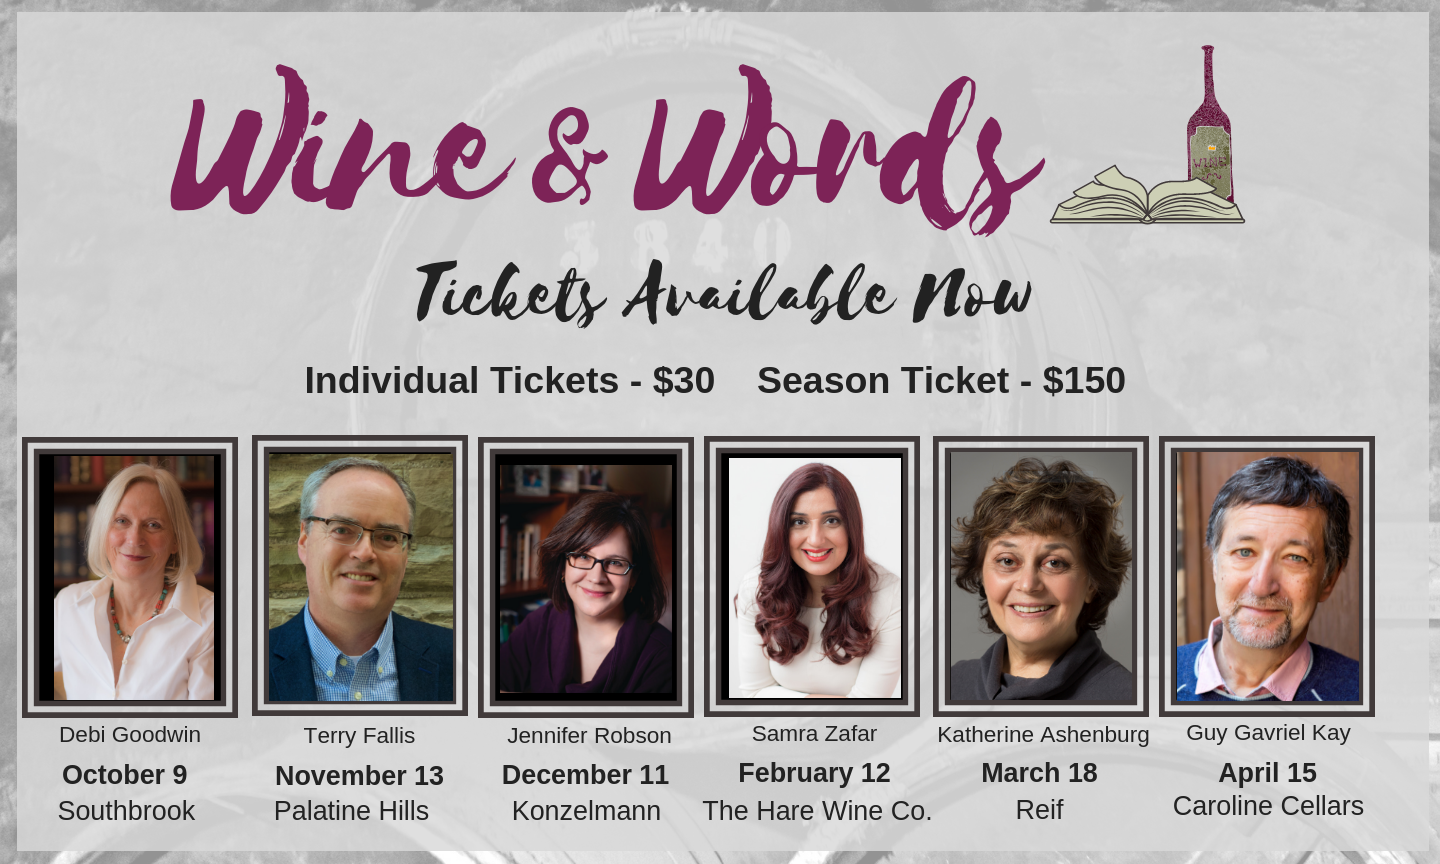 Wine & Words Tickets Available Now